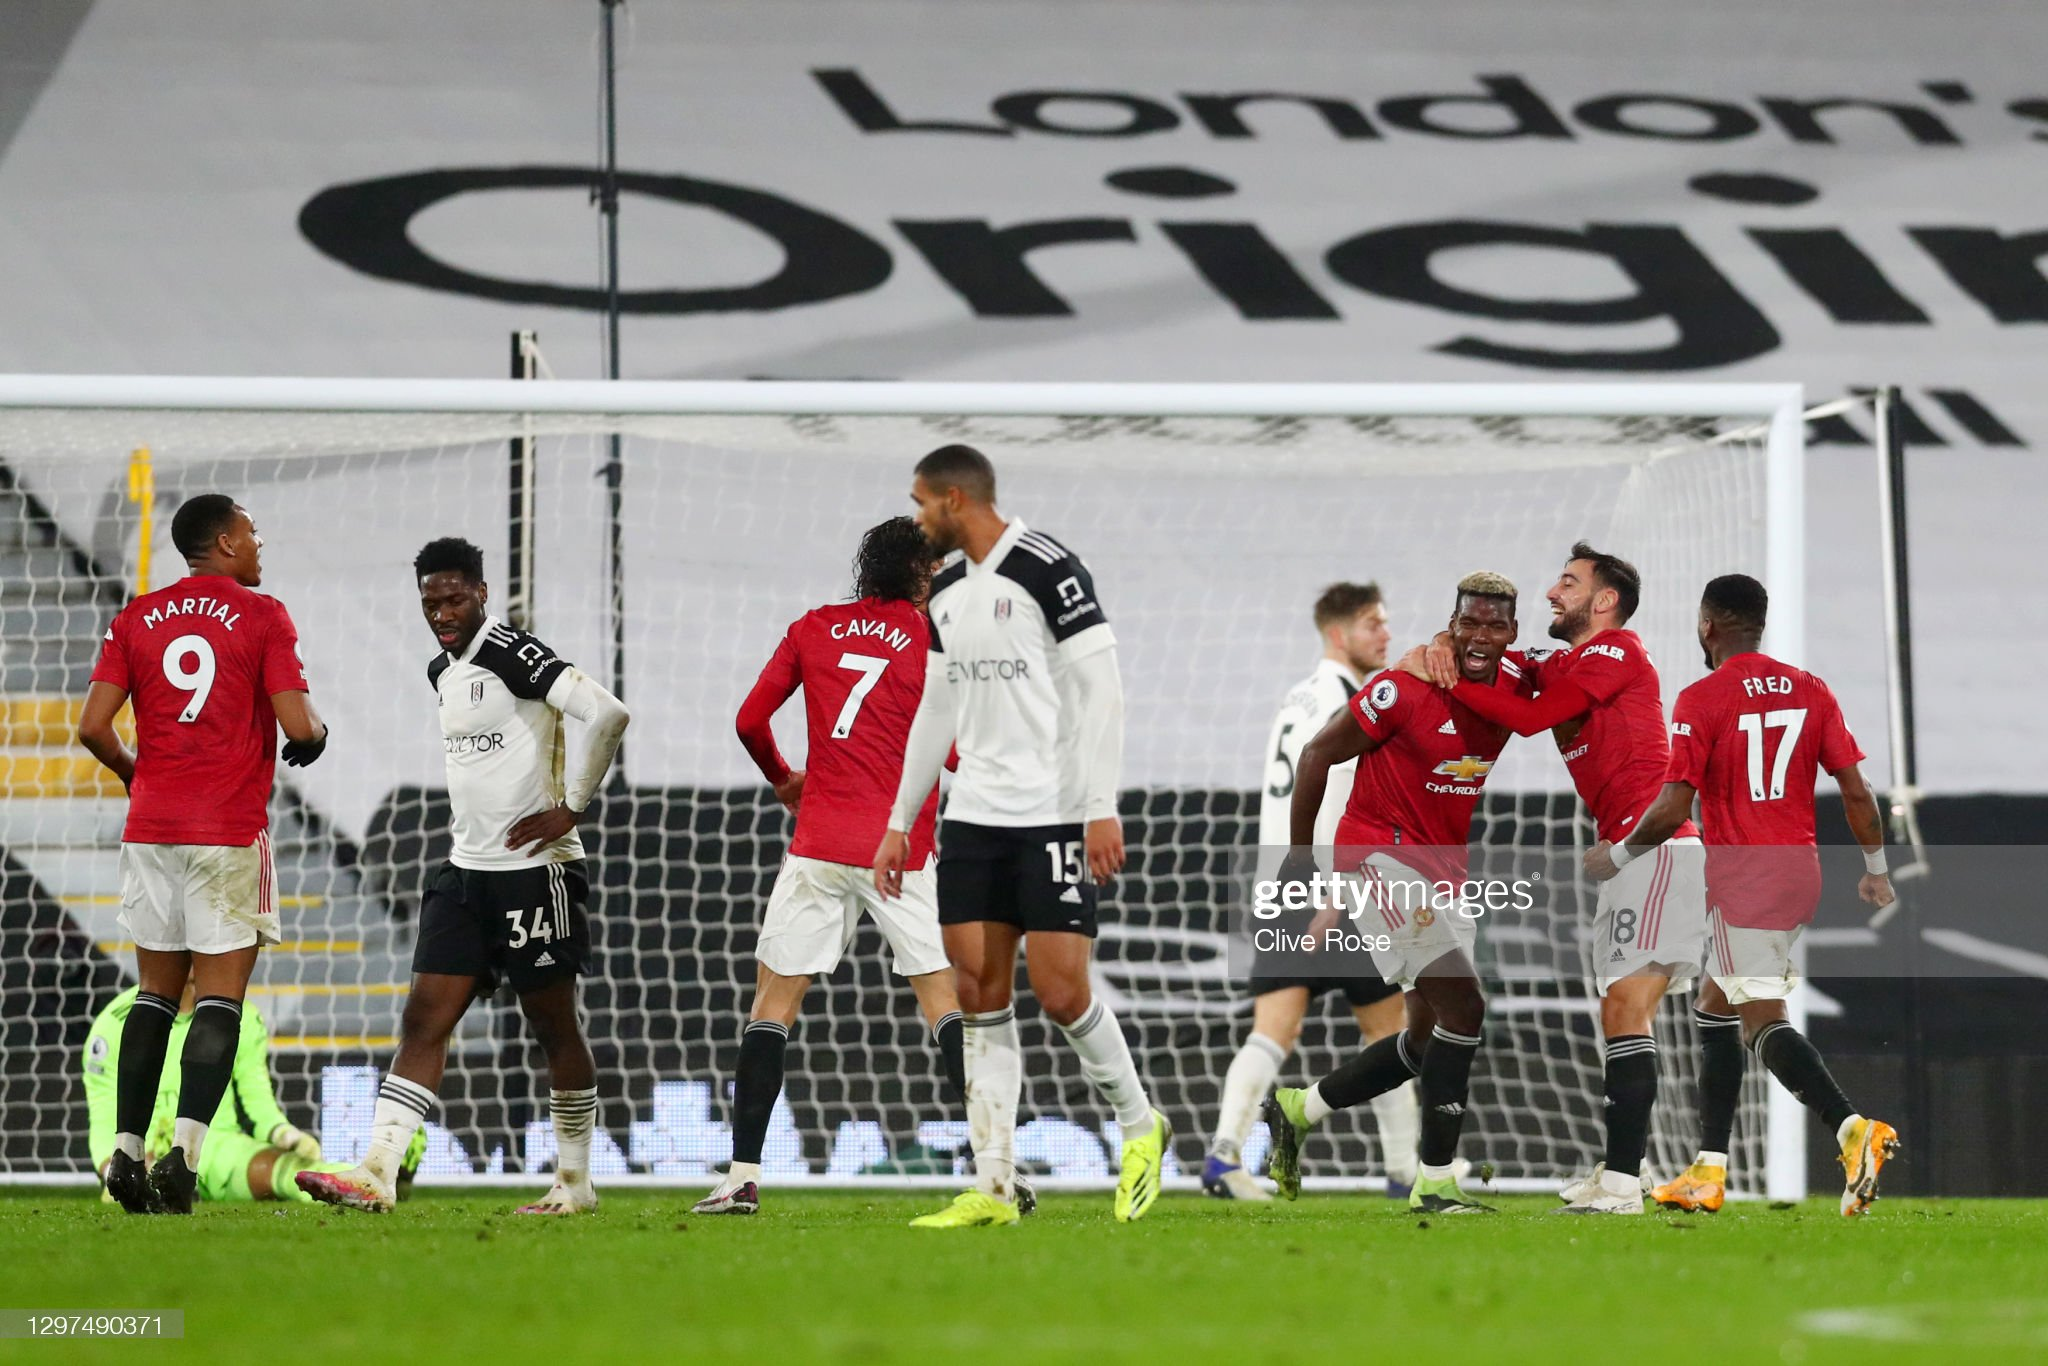 Pogba's stunning goal consigns Fulham to another loss